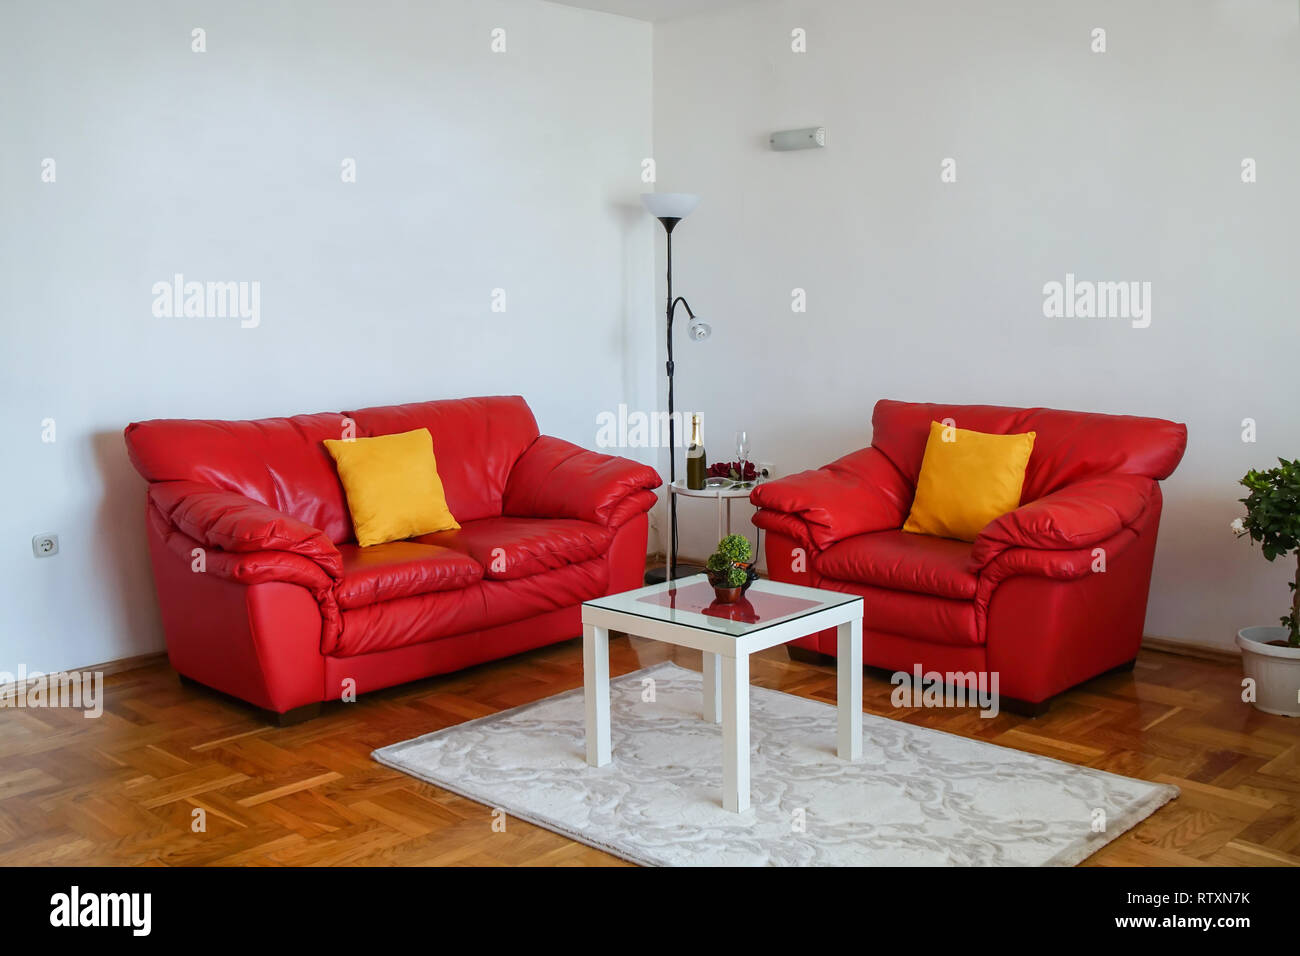 Outstanding Interior Shot Of A Modern Living Room Spacious Apartment Onthecornerstone Fun Painted Chair Ideas Images Onthecornerstoneorg